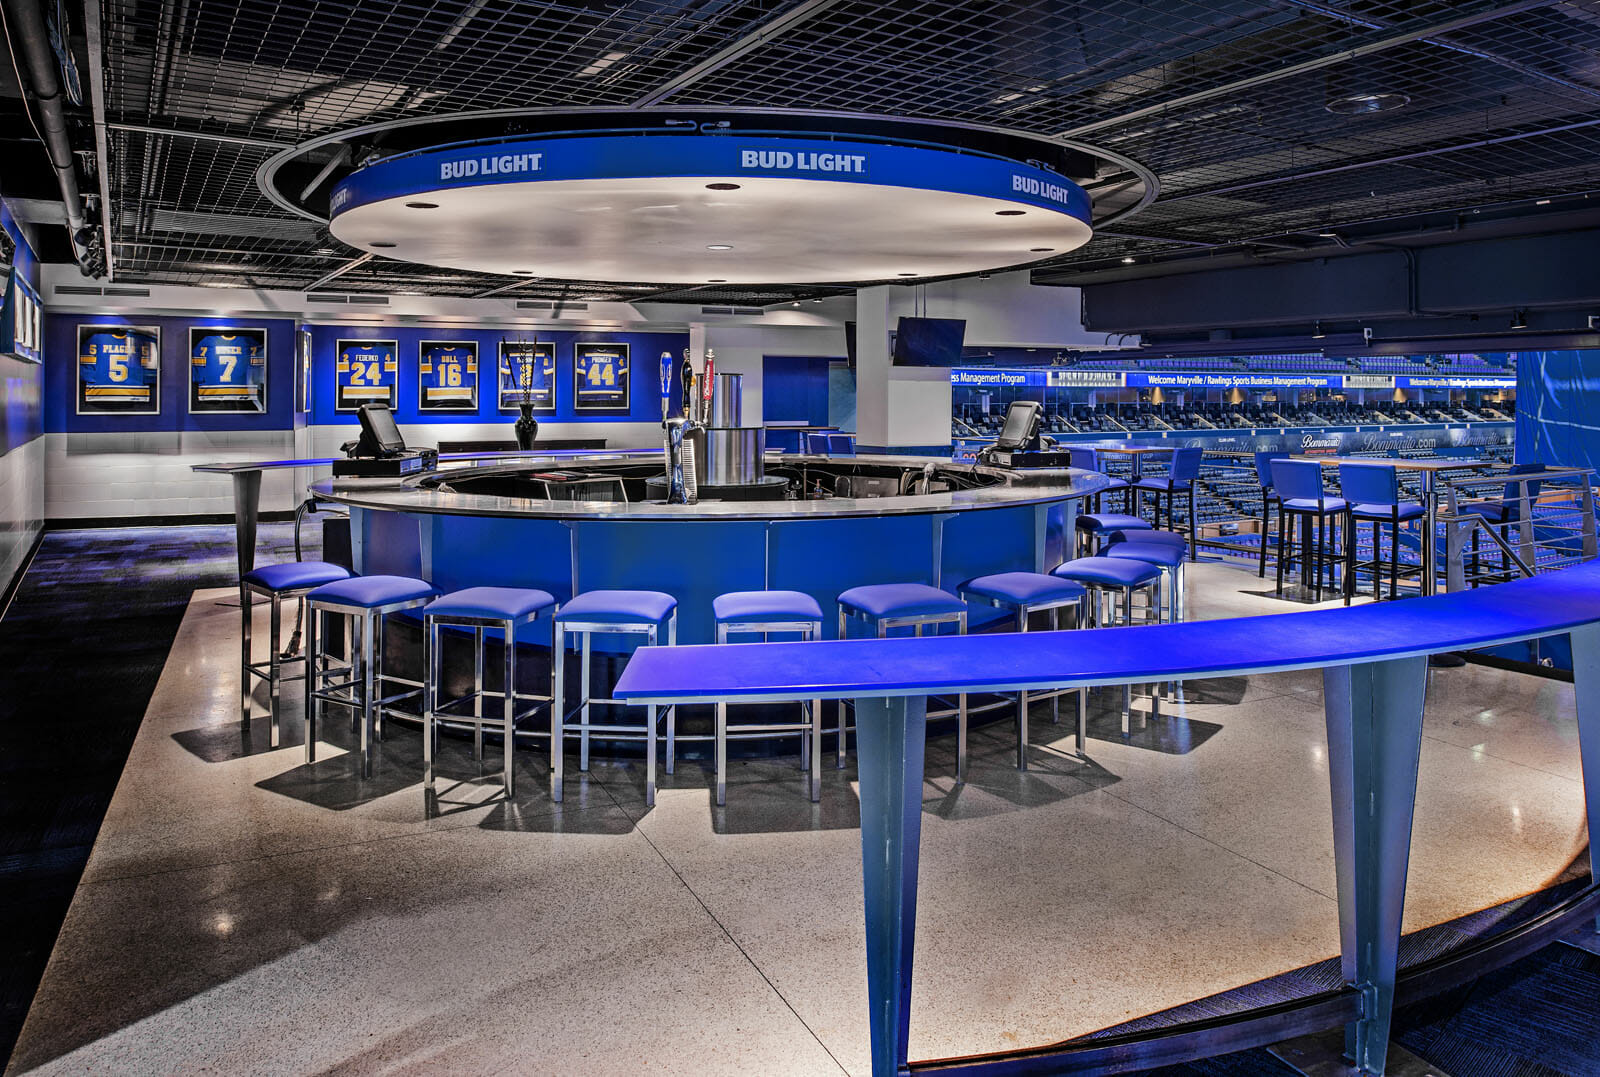 PARIC Corp helped make the Bud Light zone look new and sleek during the Scottrade Center Improvements